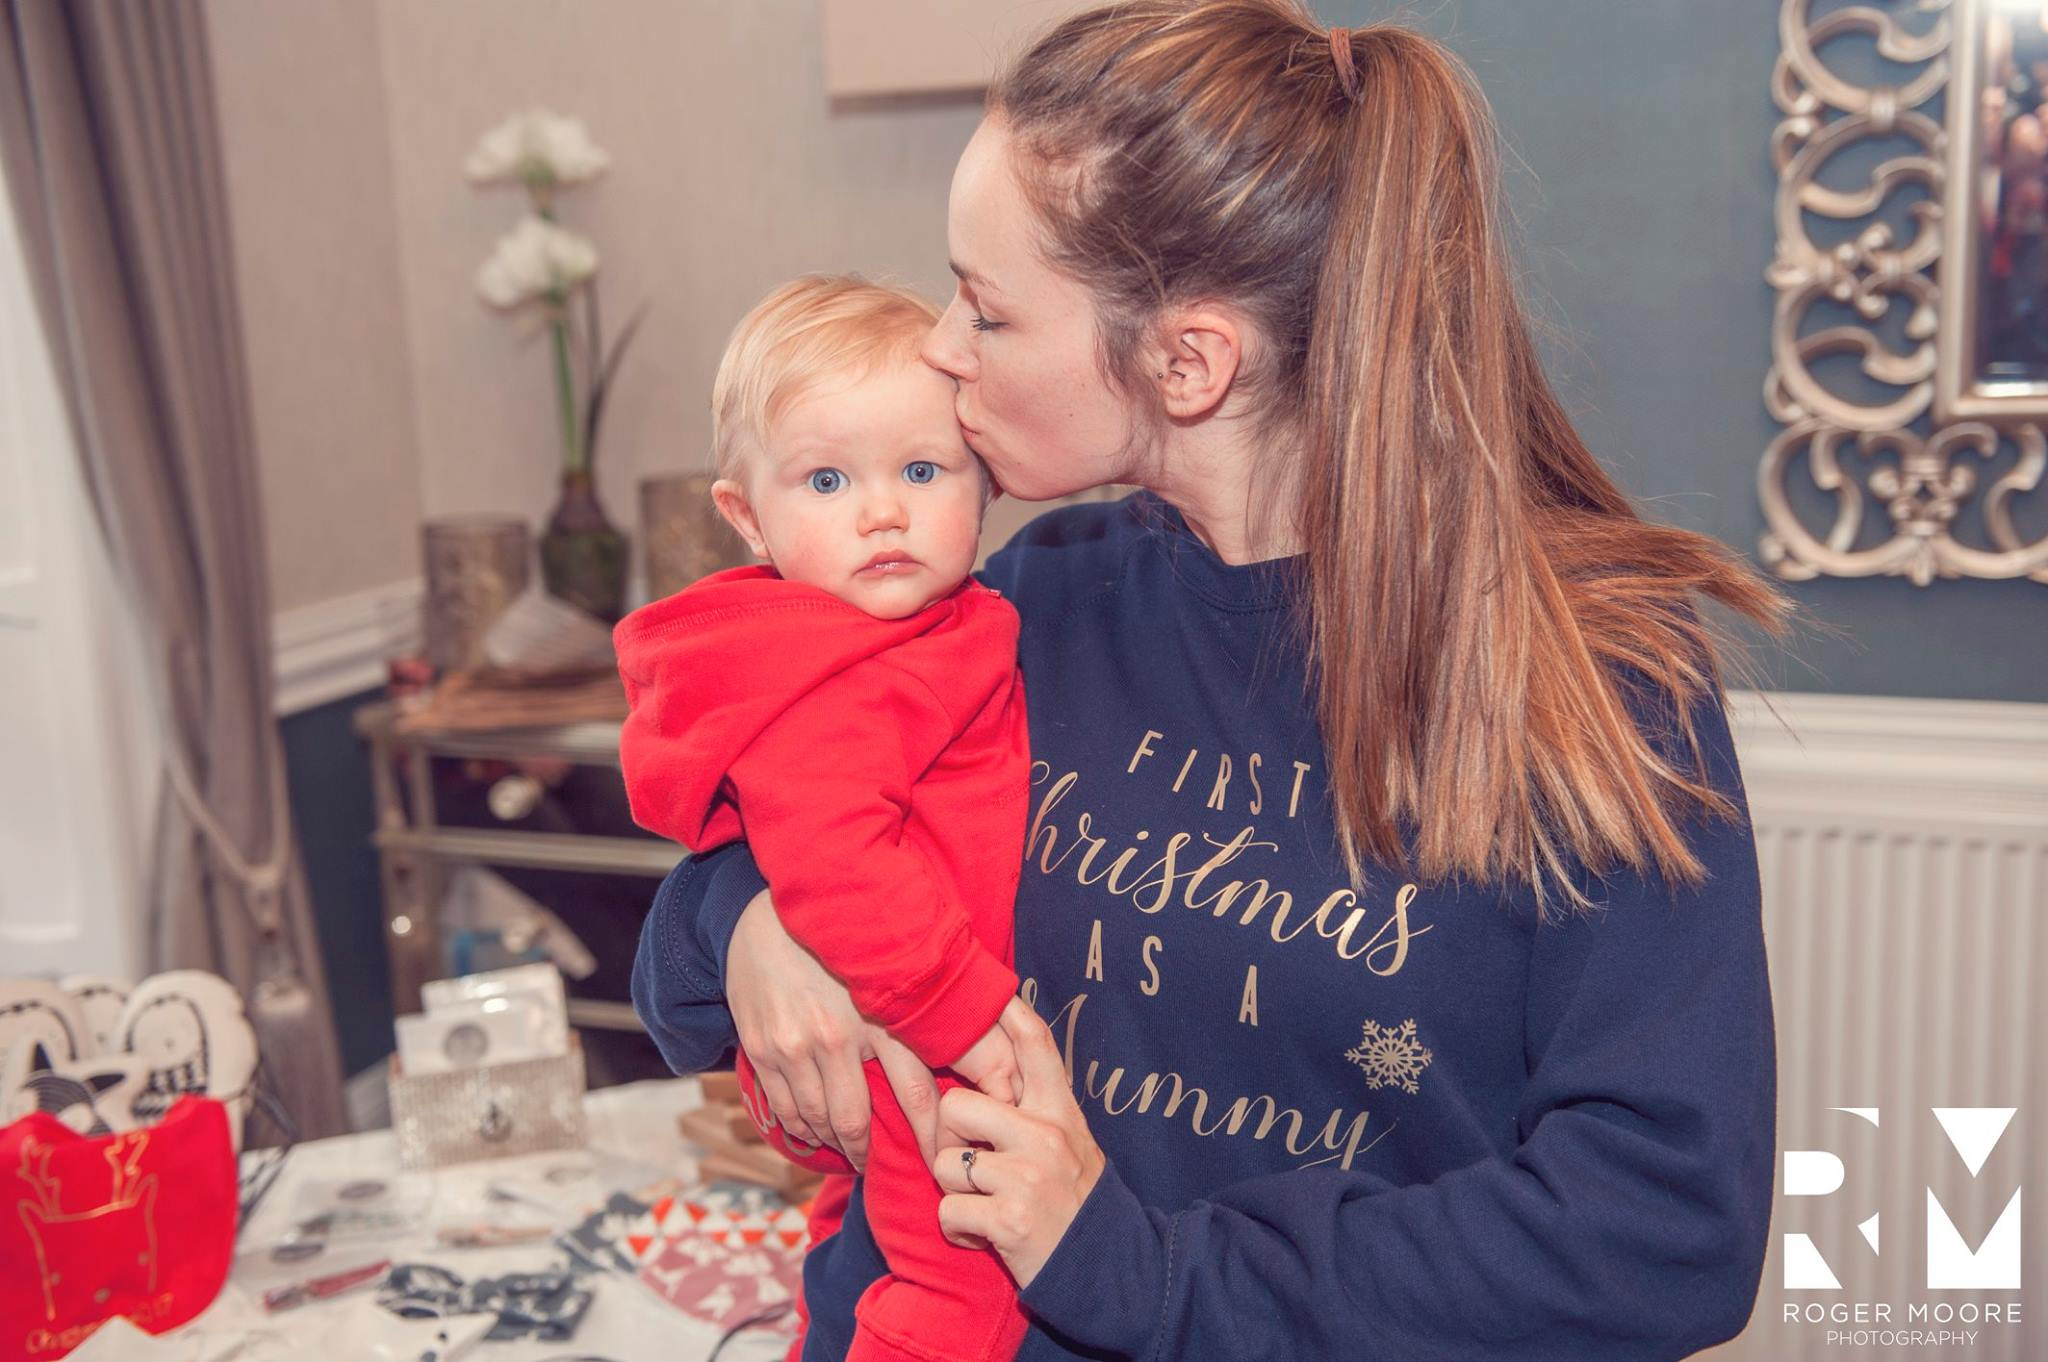 Lovely image captured by Roger Moore Photography of me and my Little Hen just before Christmas in our Whoopsie Daisie designs!